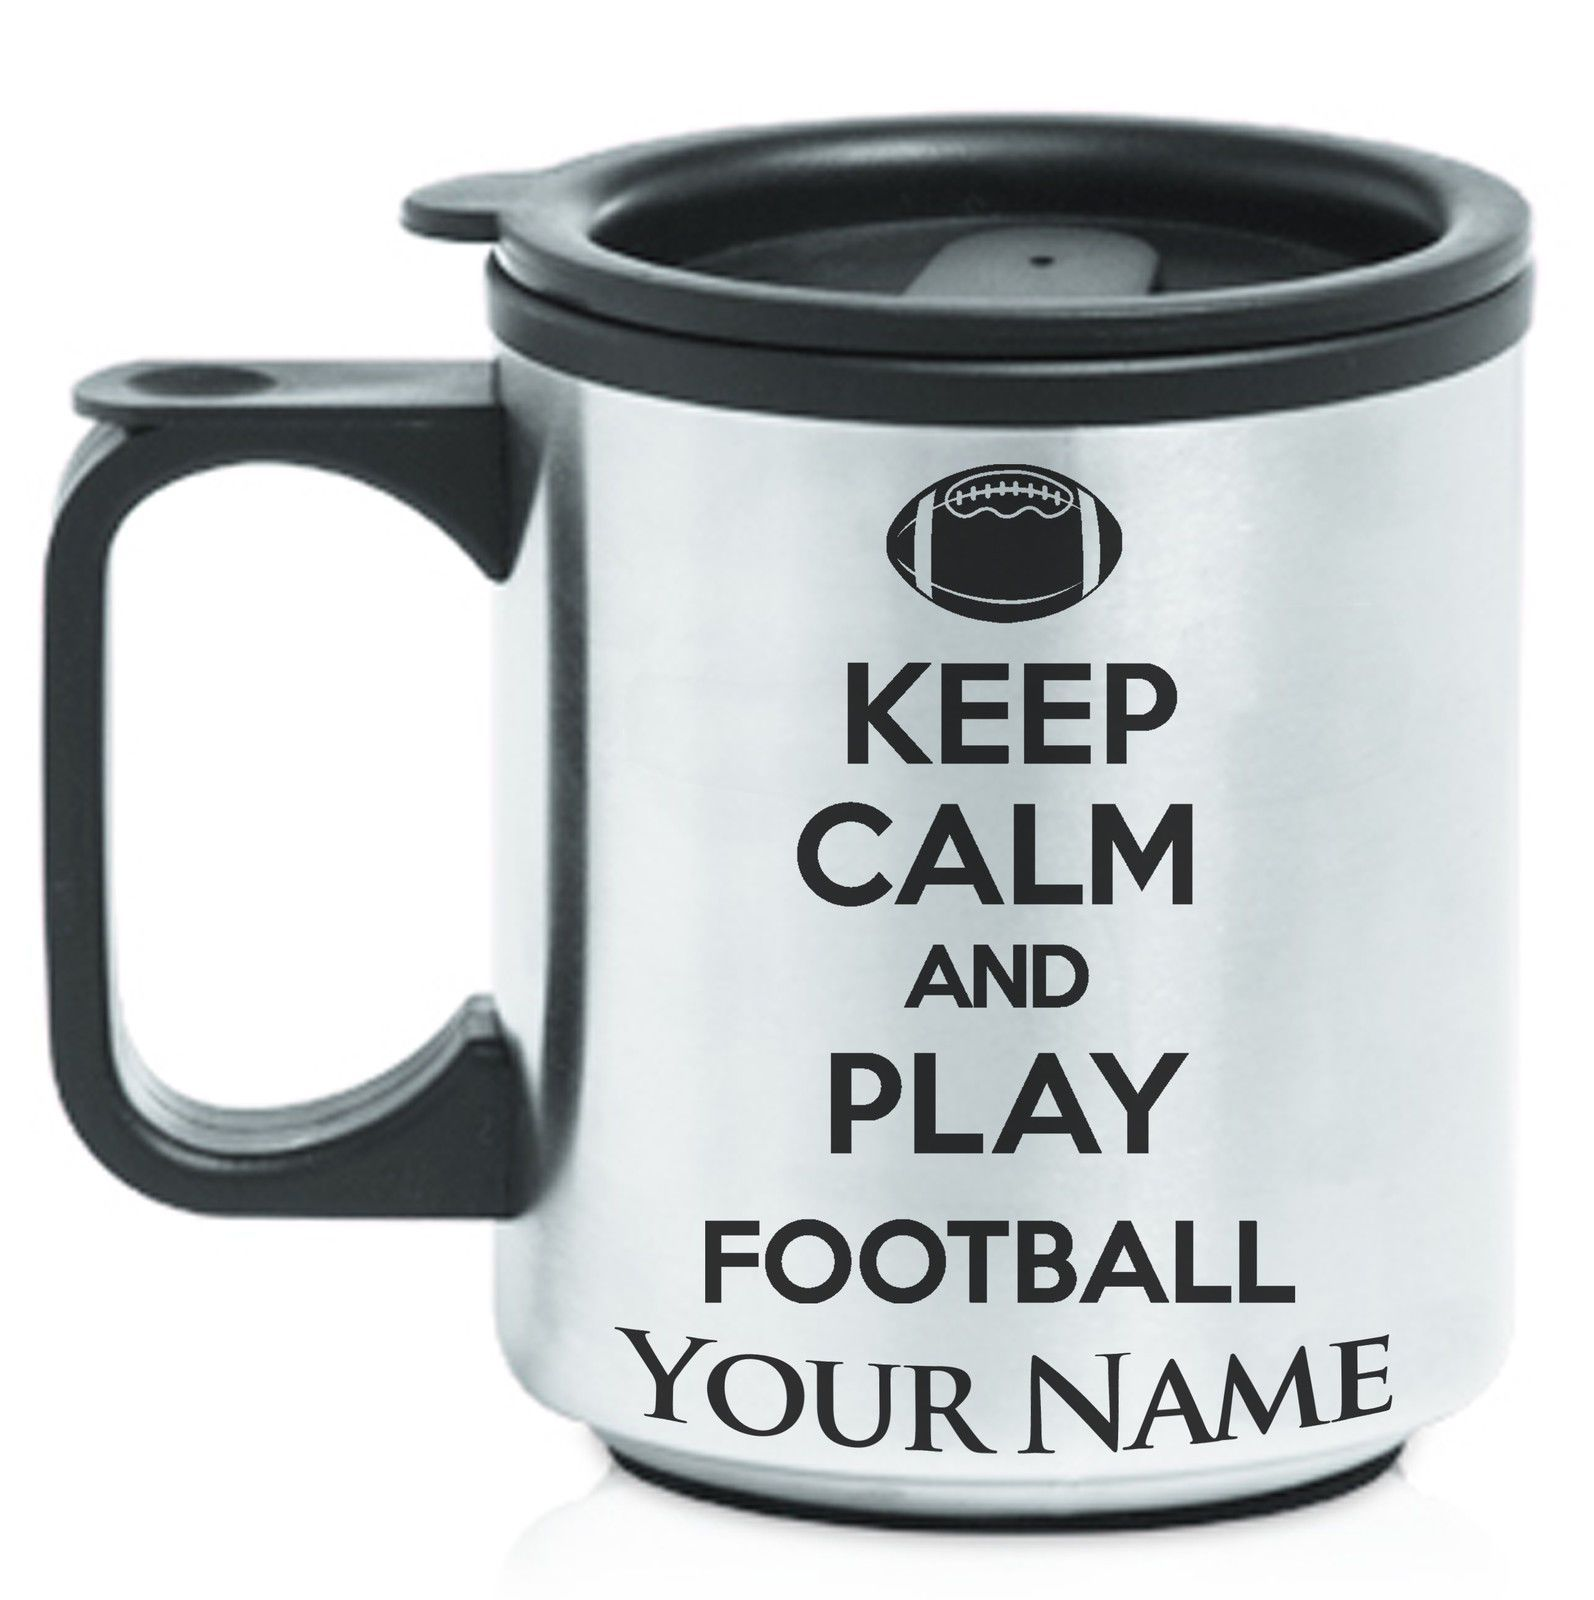 Travel Play FootballPersonalized Coffee Calm MugKeep And vf67IYbgym